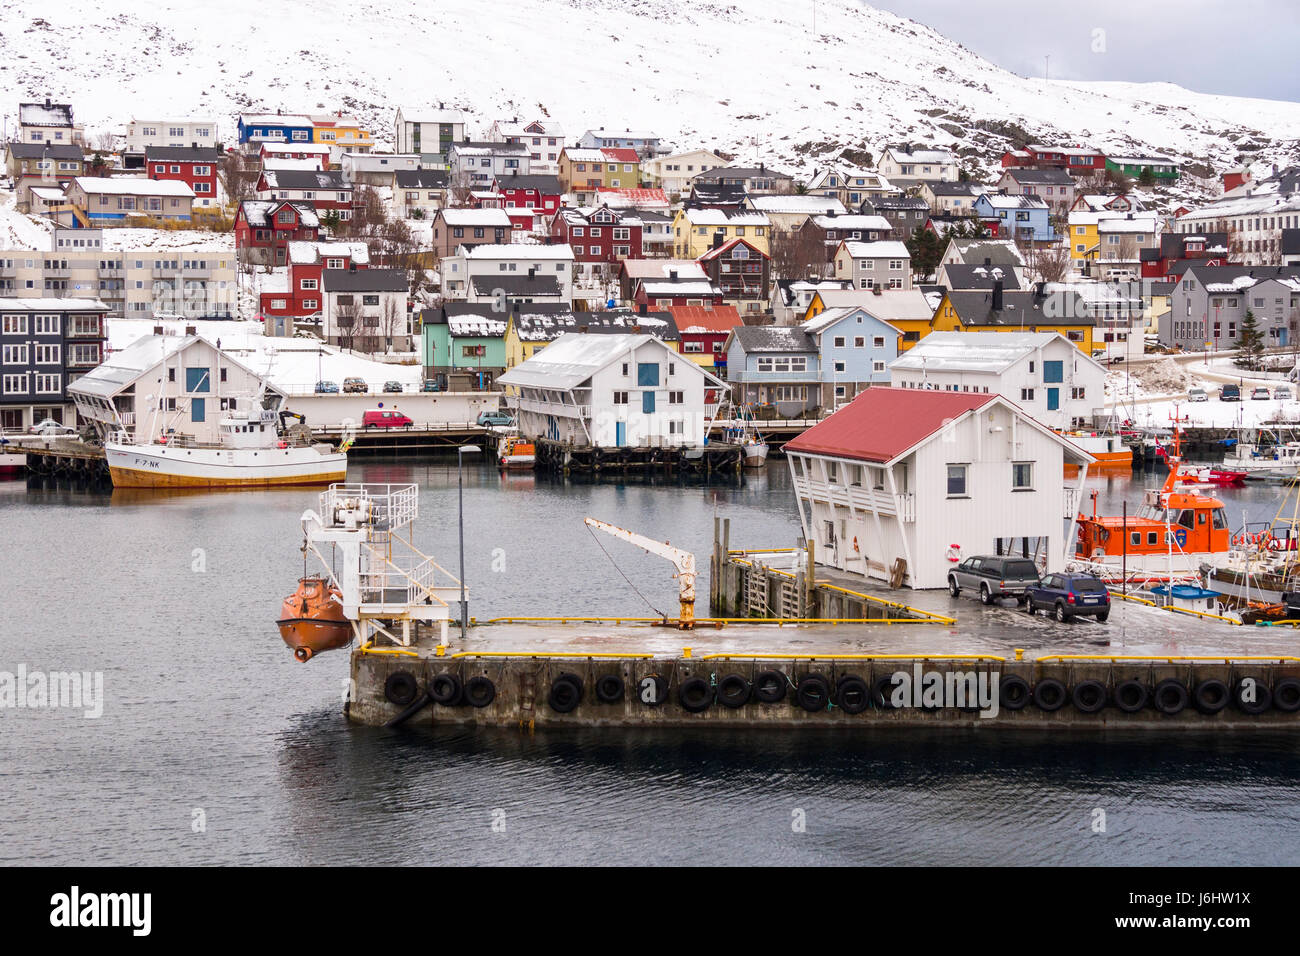 Fishing boats and unique dockside sheds at Honningsvåg, Finnmark County, Norway. - Stock Image